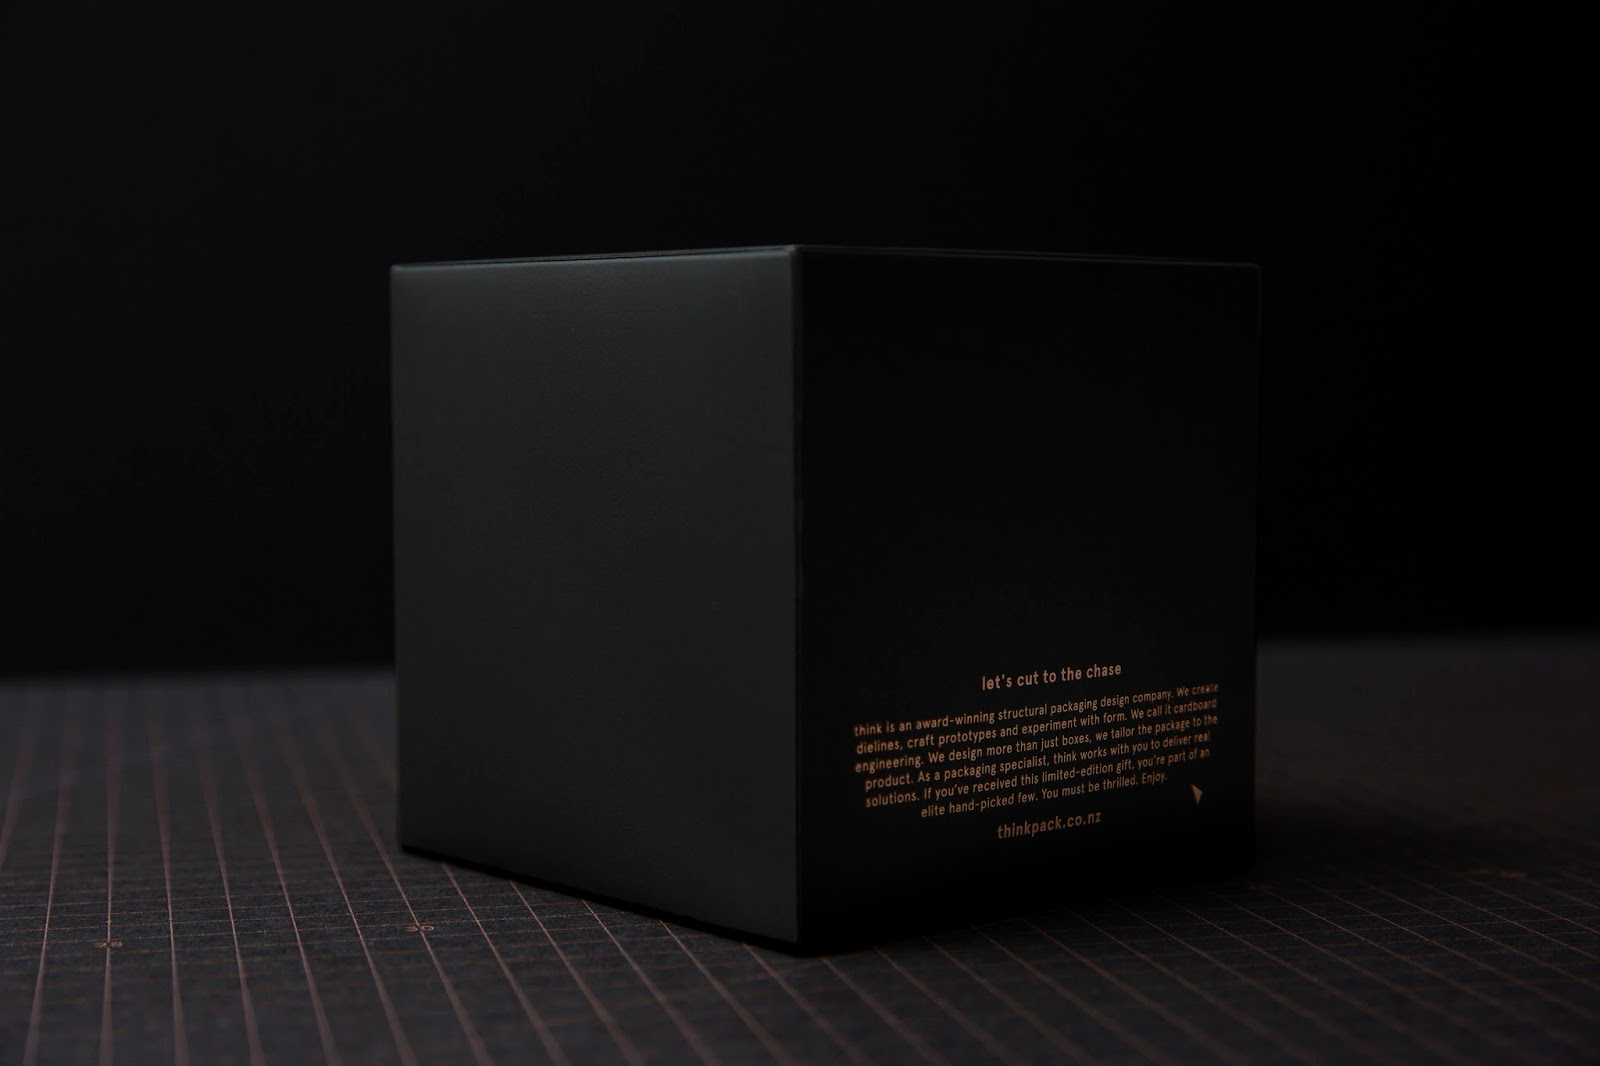 Design packaging packaging specialist packaging -  Youmadethecut